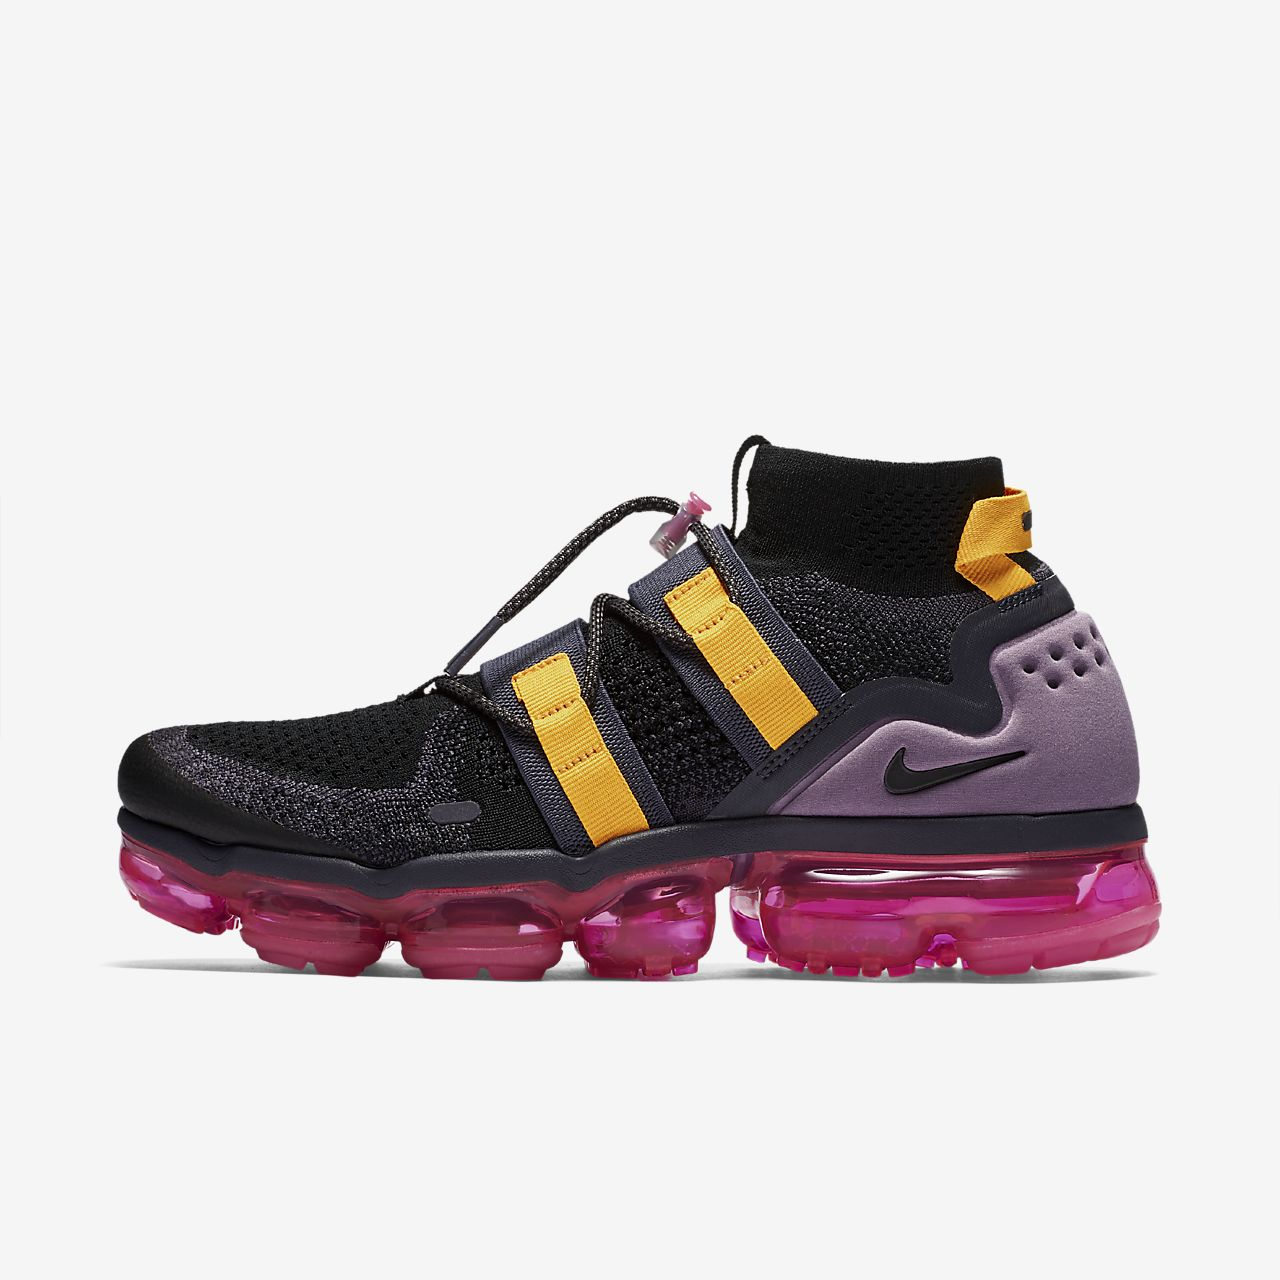 new concept b9ce0 05022 ... Nike Air VaporMax Flyknit Utility Shoe